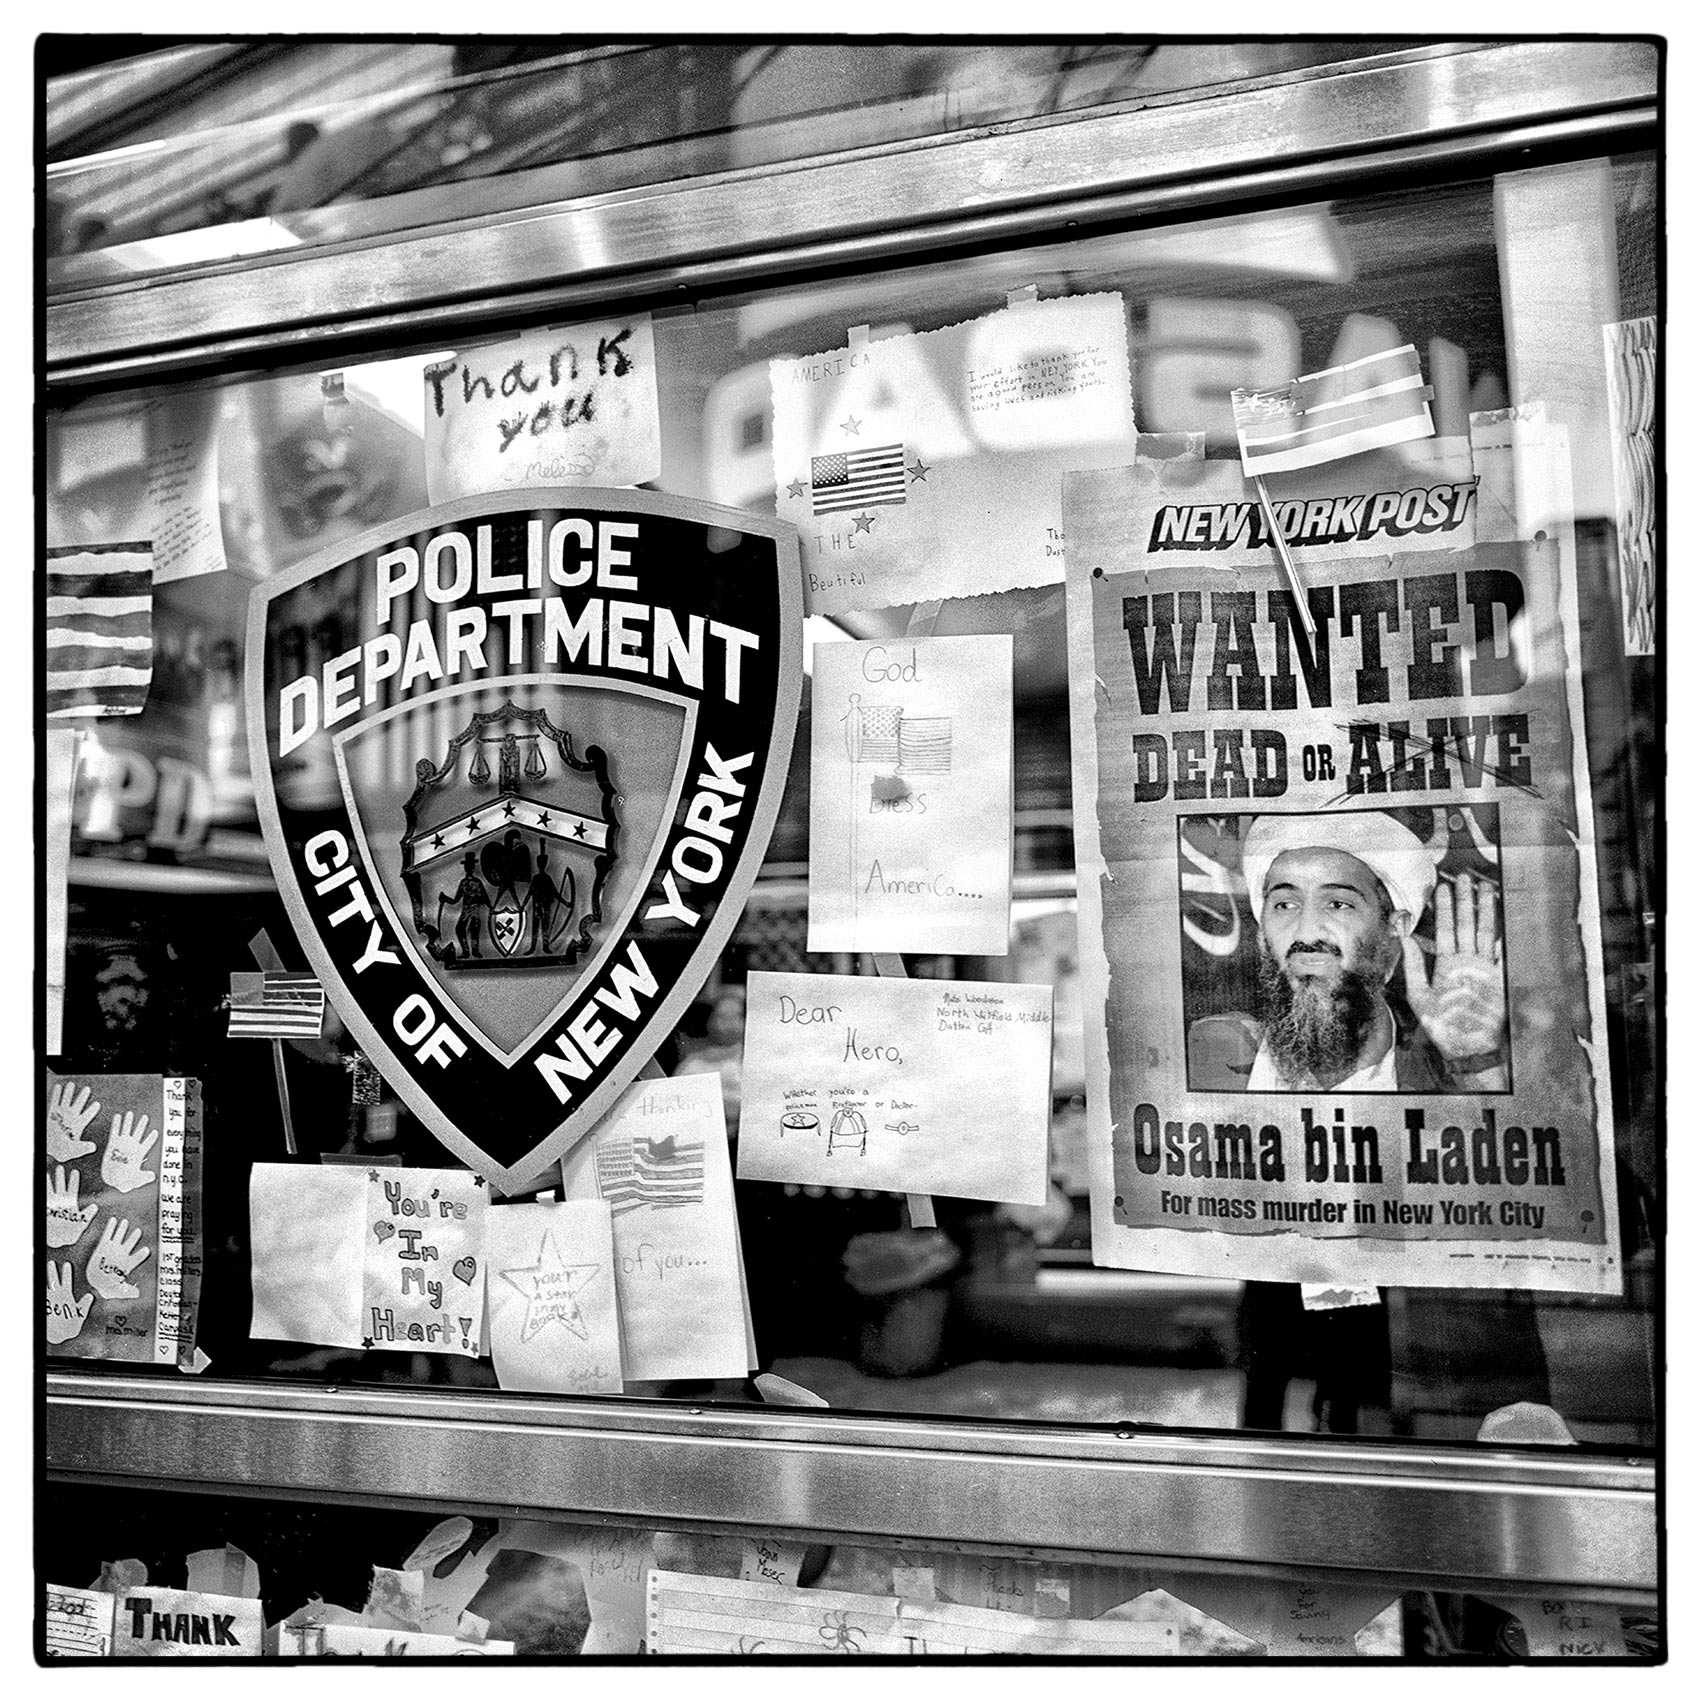 childrens-letters-and-a-osama-bin-laden-wanted-poster-are-posted-in-the-nypd-times-square-office-after-911